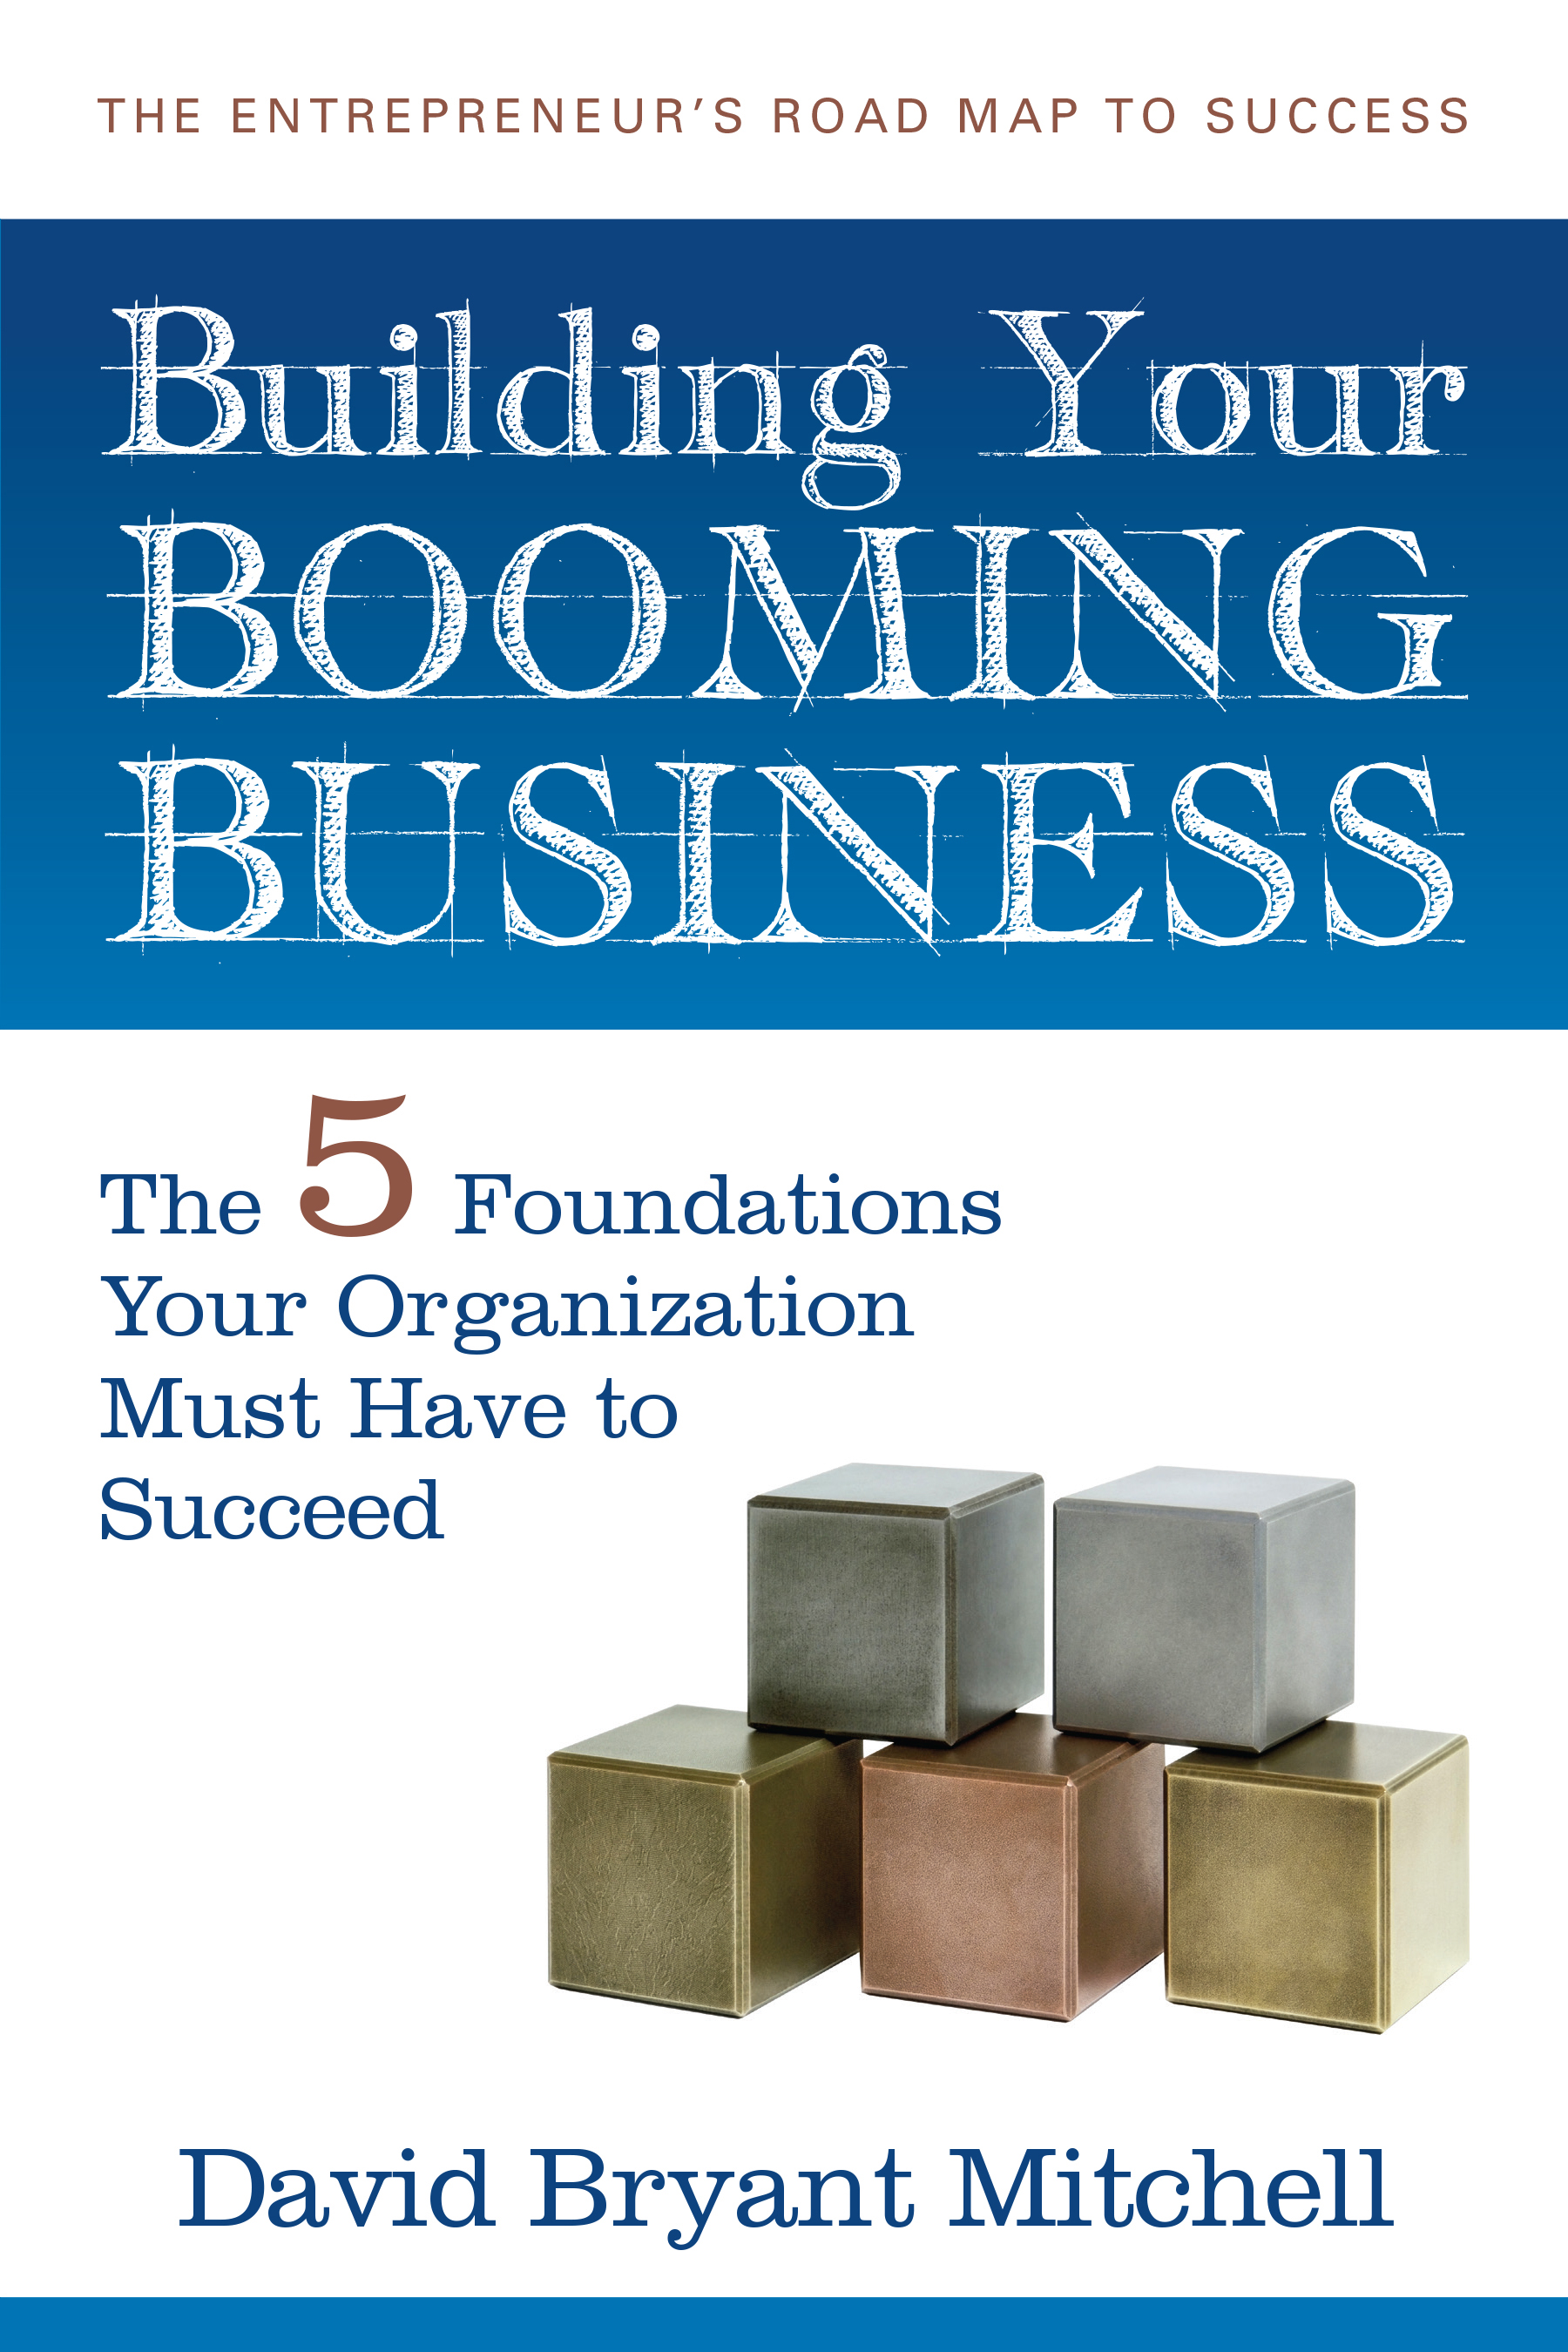 Building Your Booming Business: The Five Foundations Every Organization  Needs to Succeed, an Ebook by David Bryant Mitchell